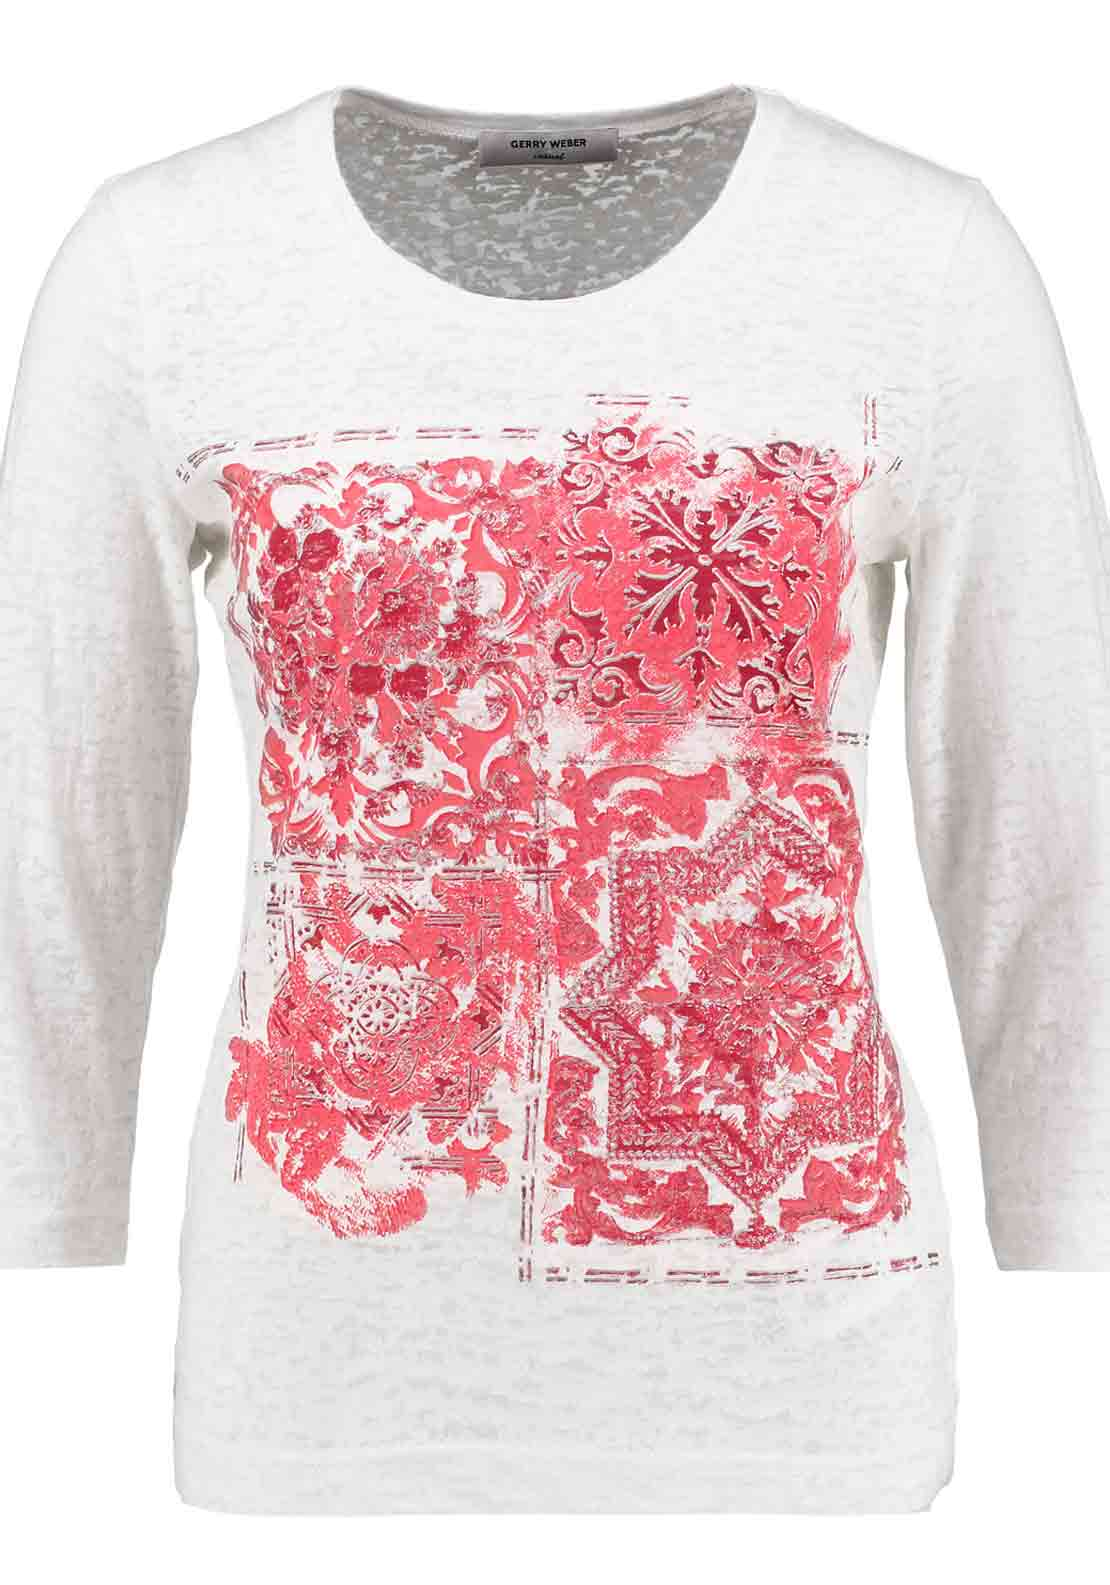 Gerry Weber Printed Cropped Sleeve T-Shirt, White and Pink